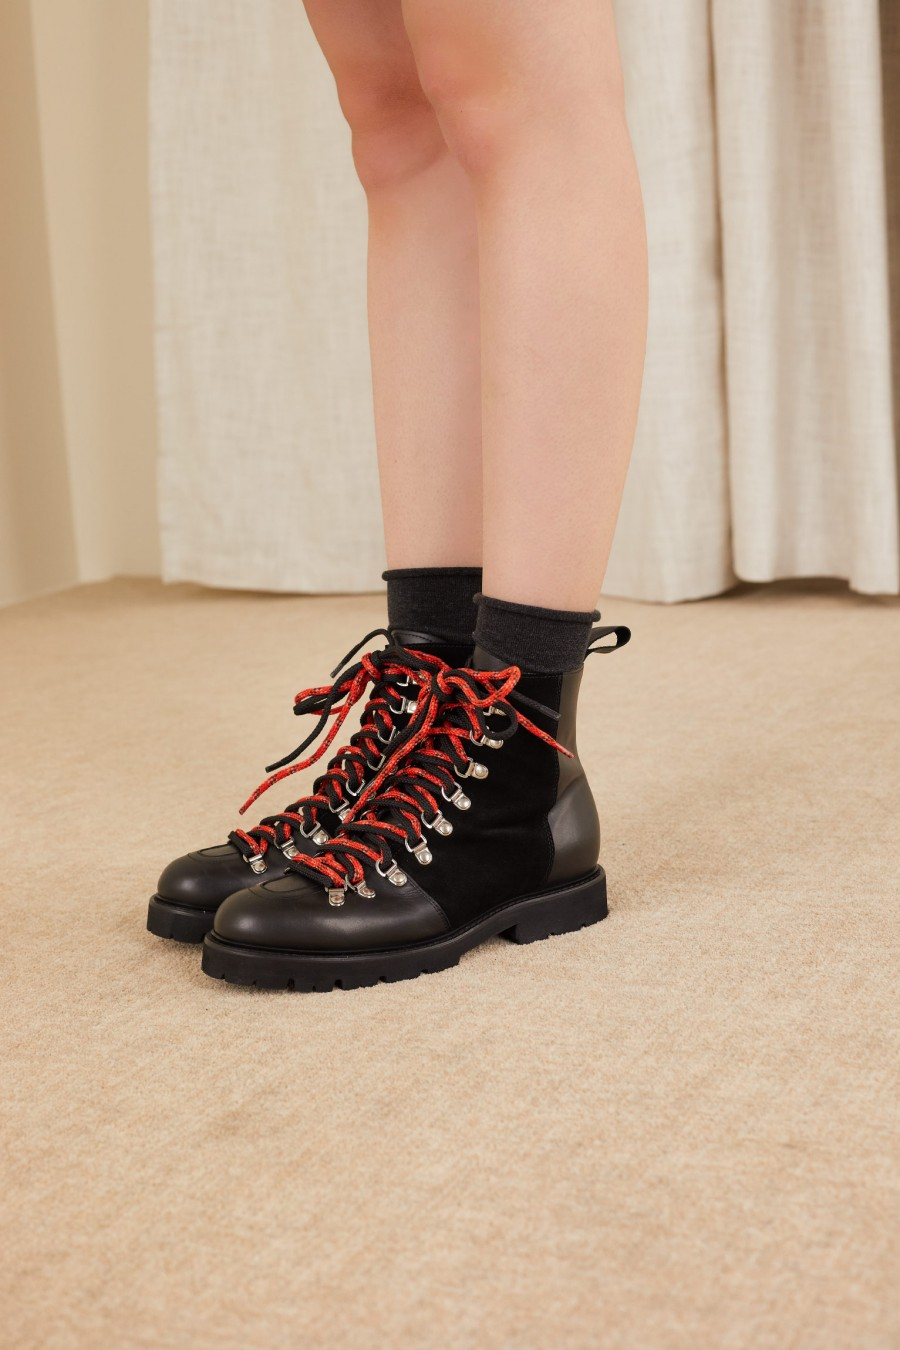 casual pedula-style boots